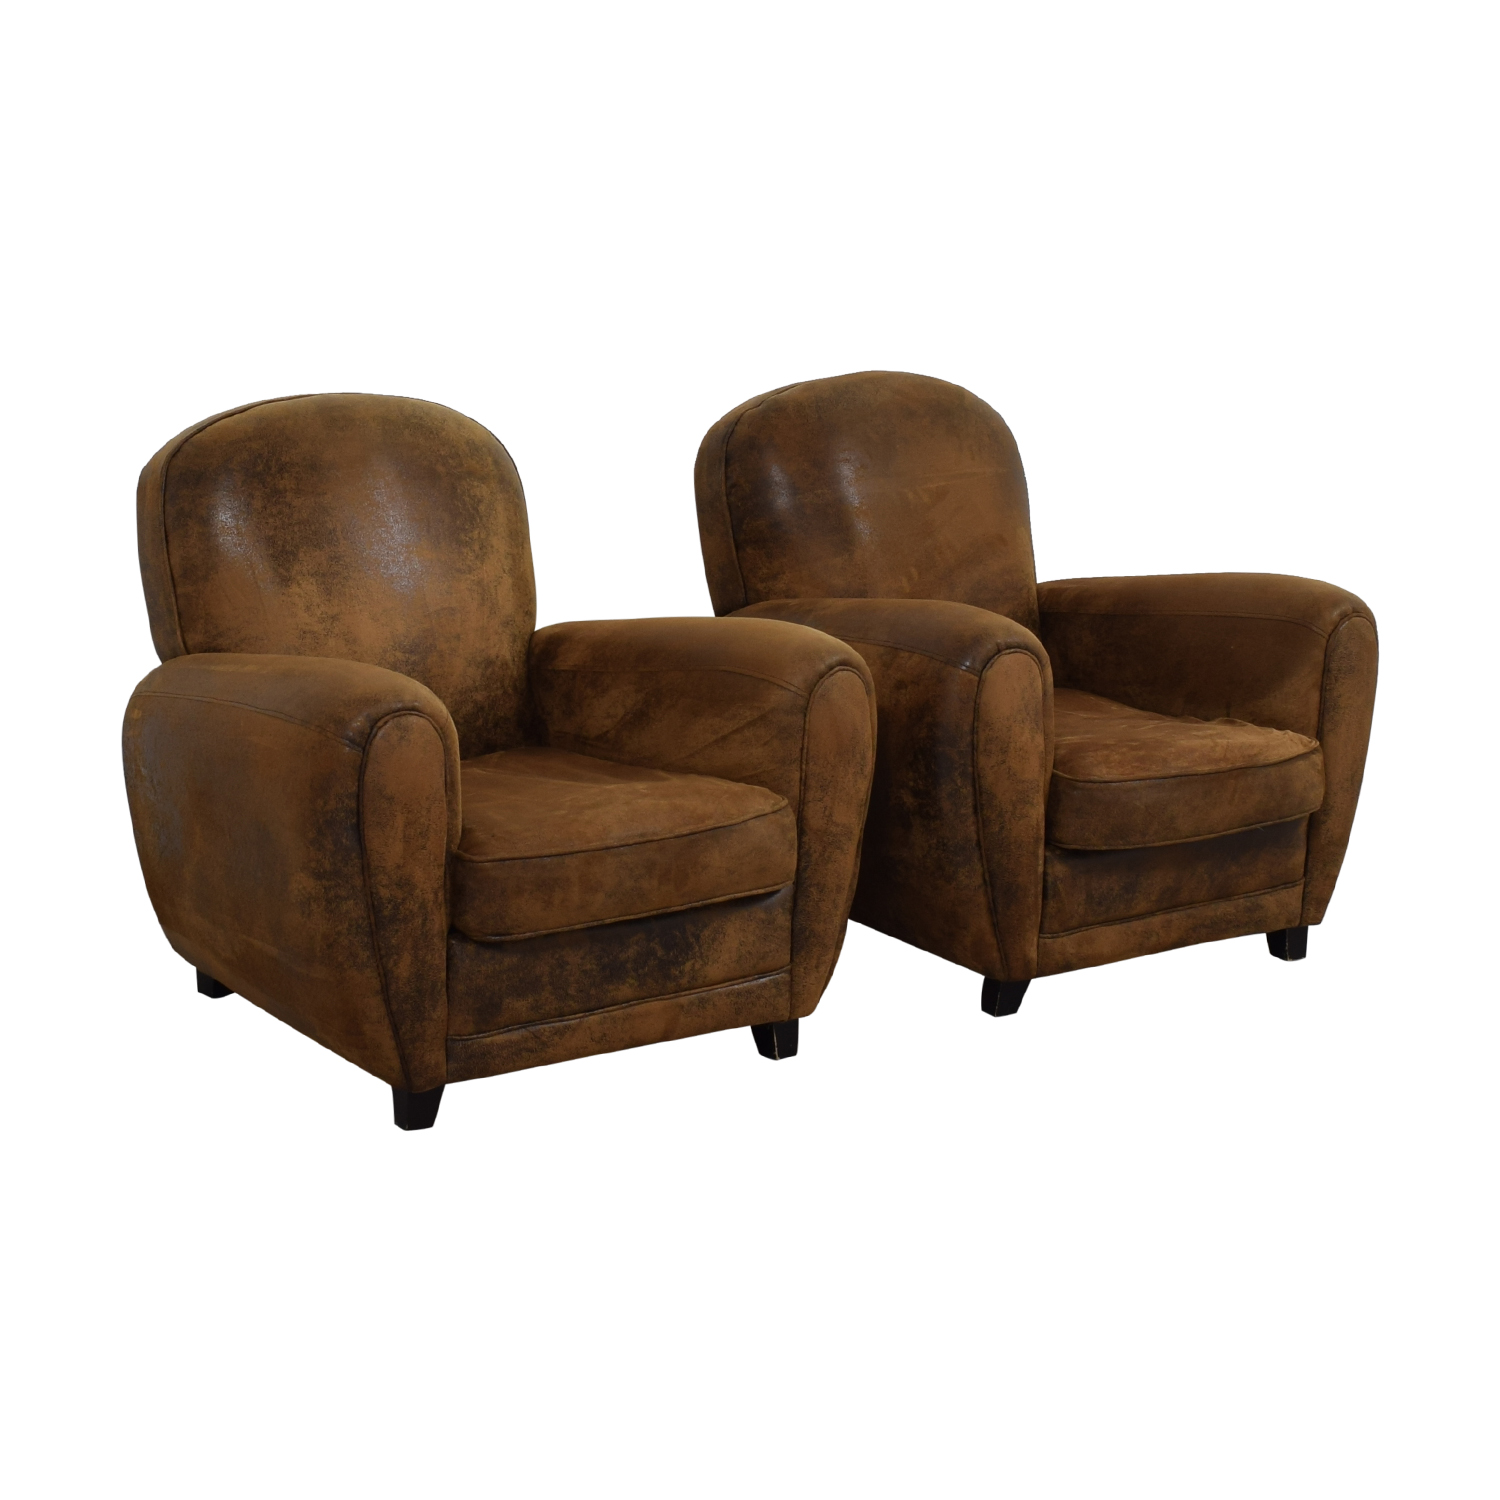 ... Maison Du Monde Maison Du Monde Brown Club Chairs Dimensions ...